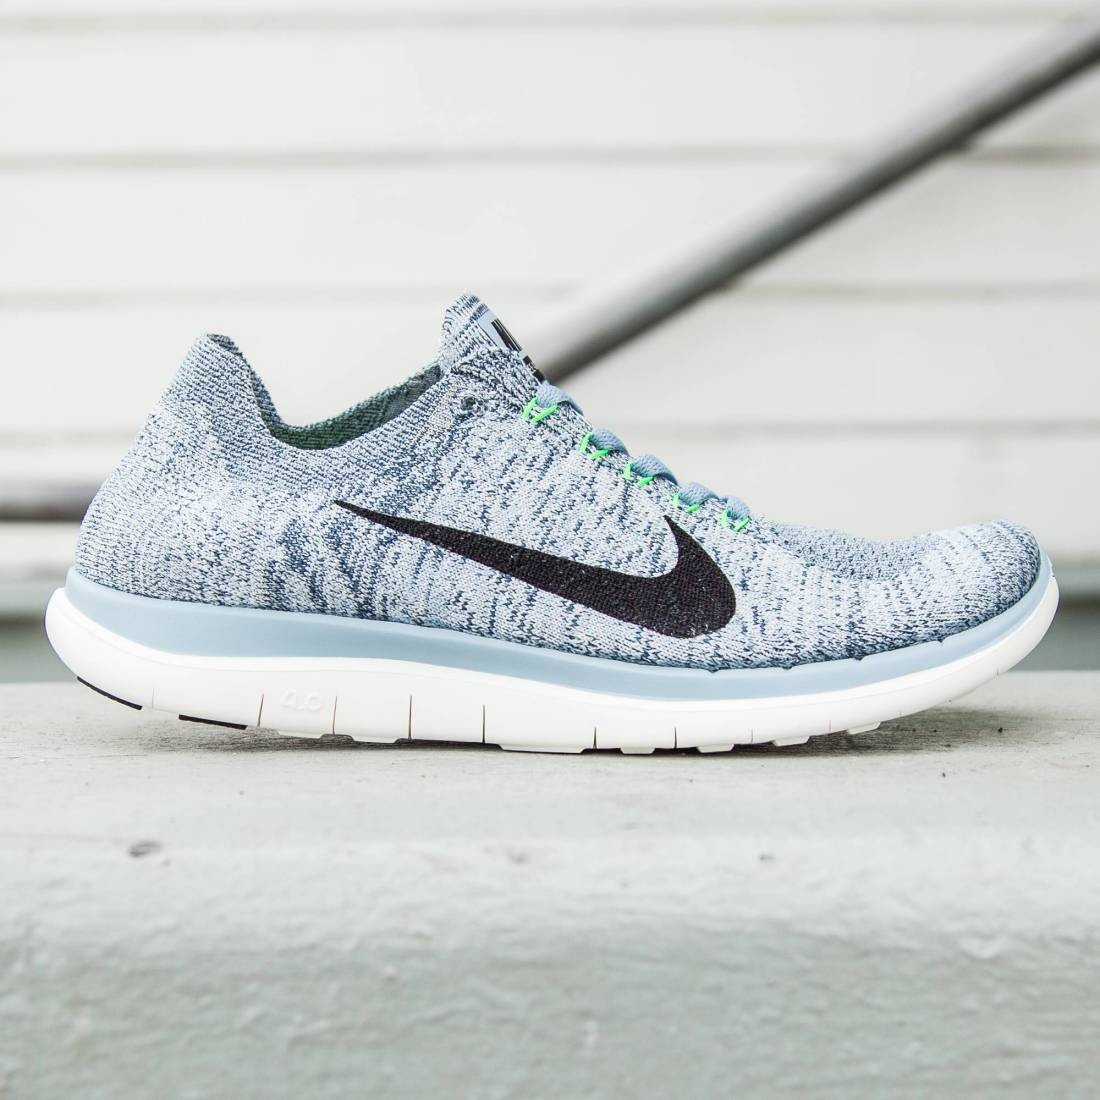 buy online 4631a 3405c canada blue white womens nike free shoes f1981 89099